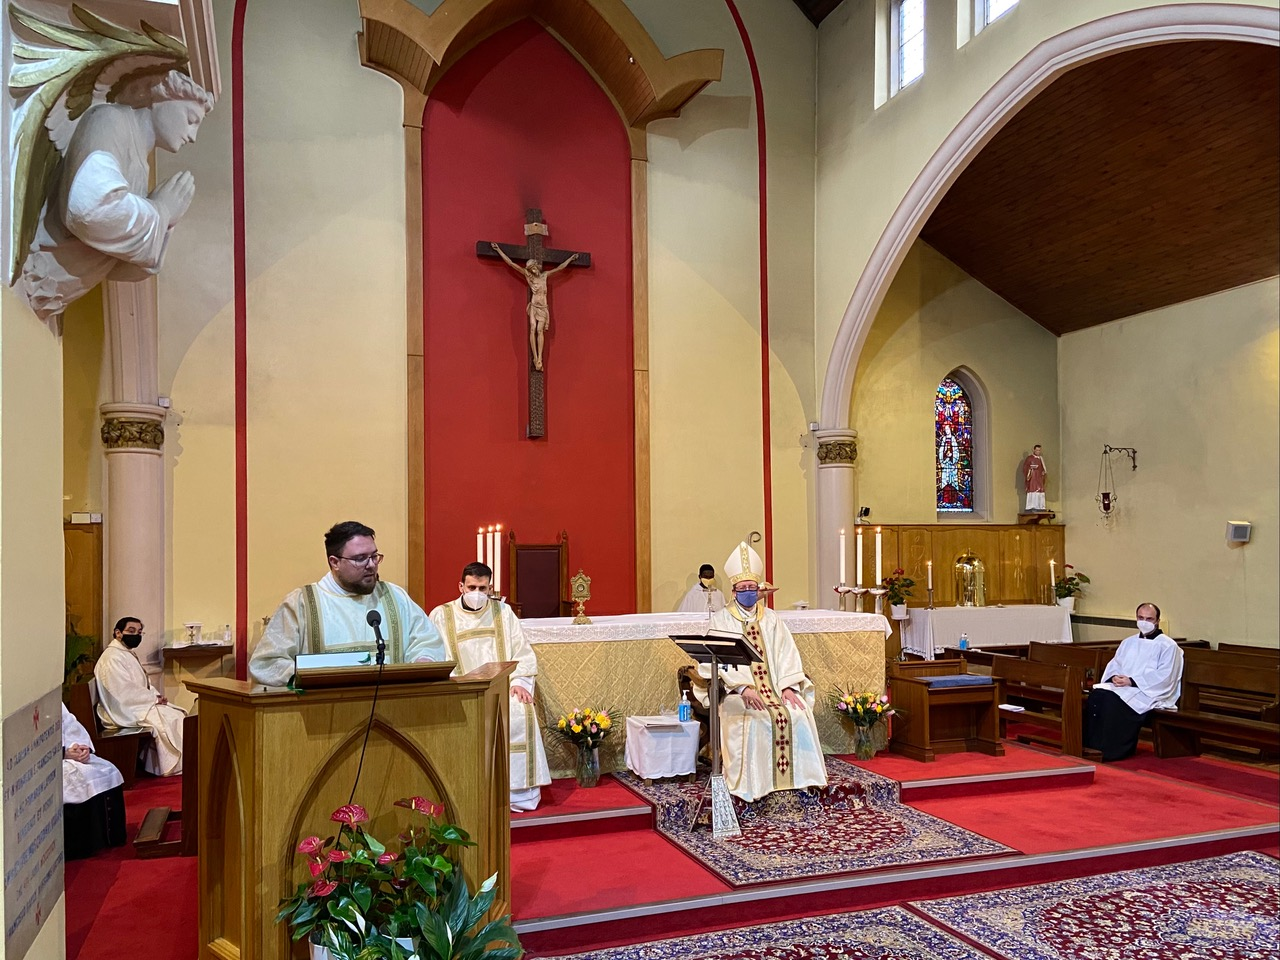 Relying on God's Love: Deacon Jakub Joszko - Diocese of Westminster